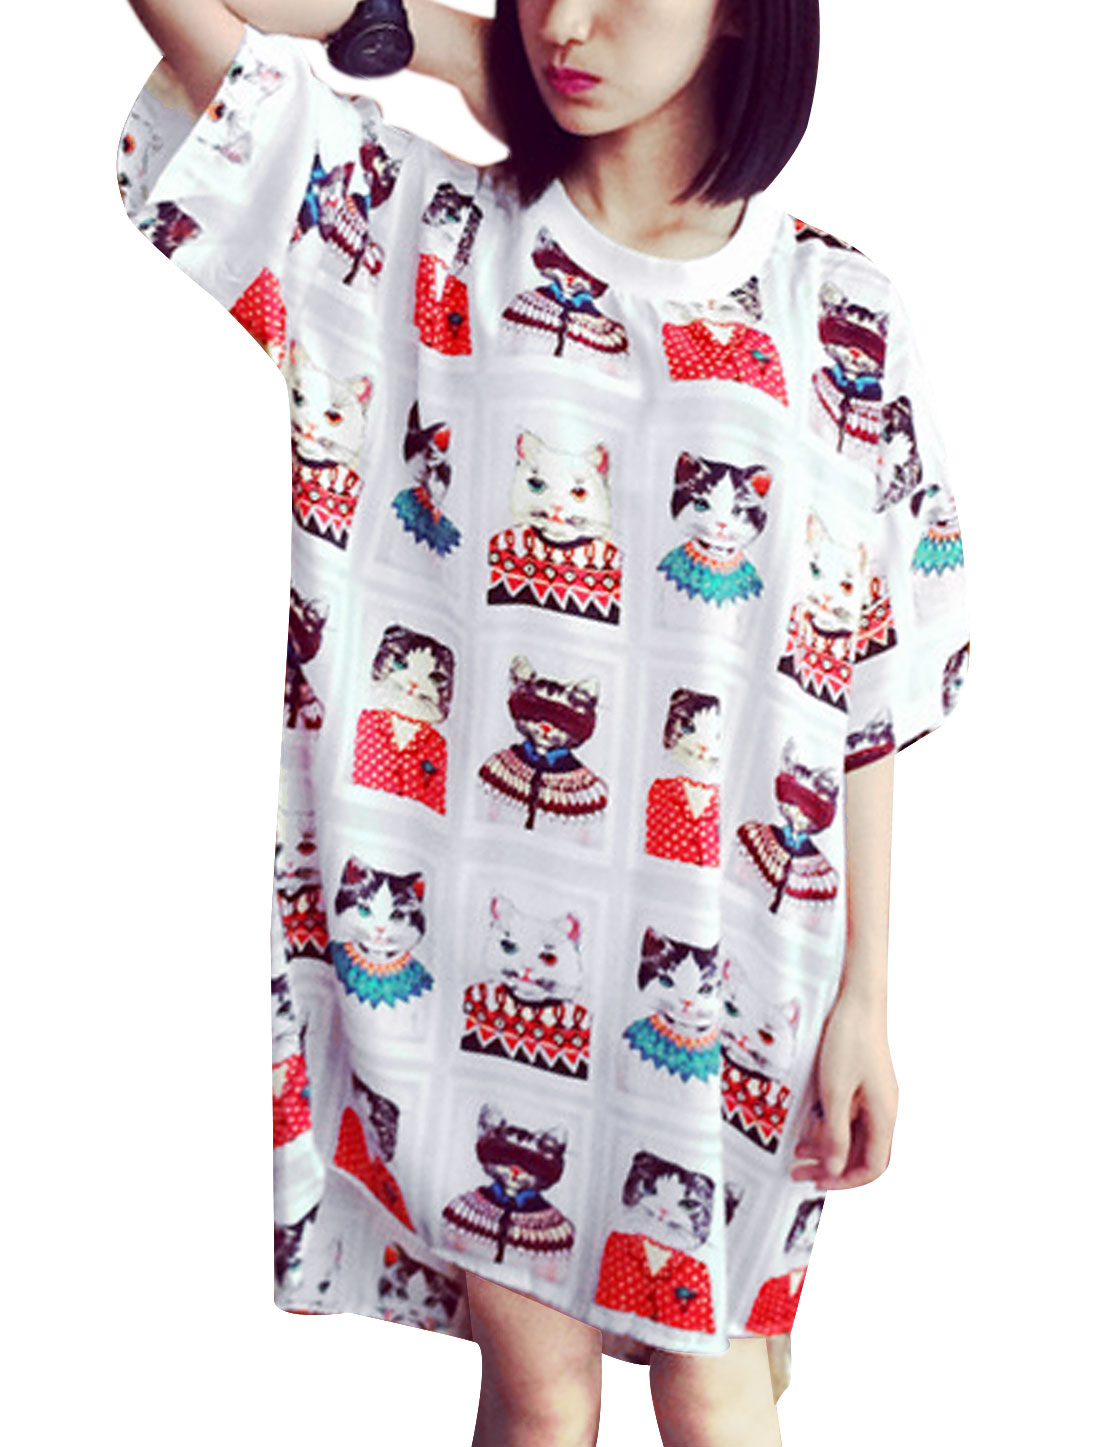 Lady Elbow Sleeve Cartoon Cat Prints High Low Hem Loose Tunic Top Multicolor S